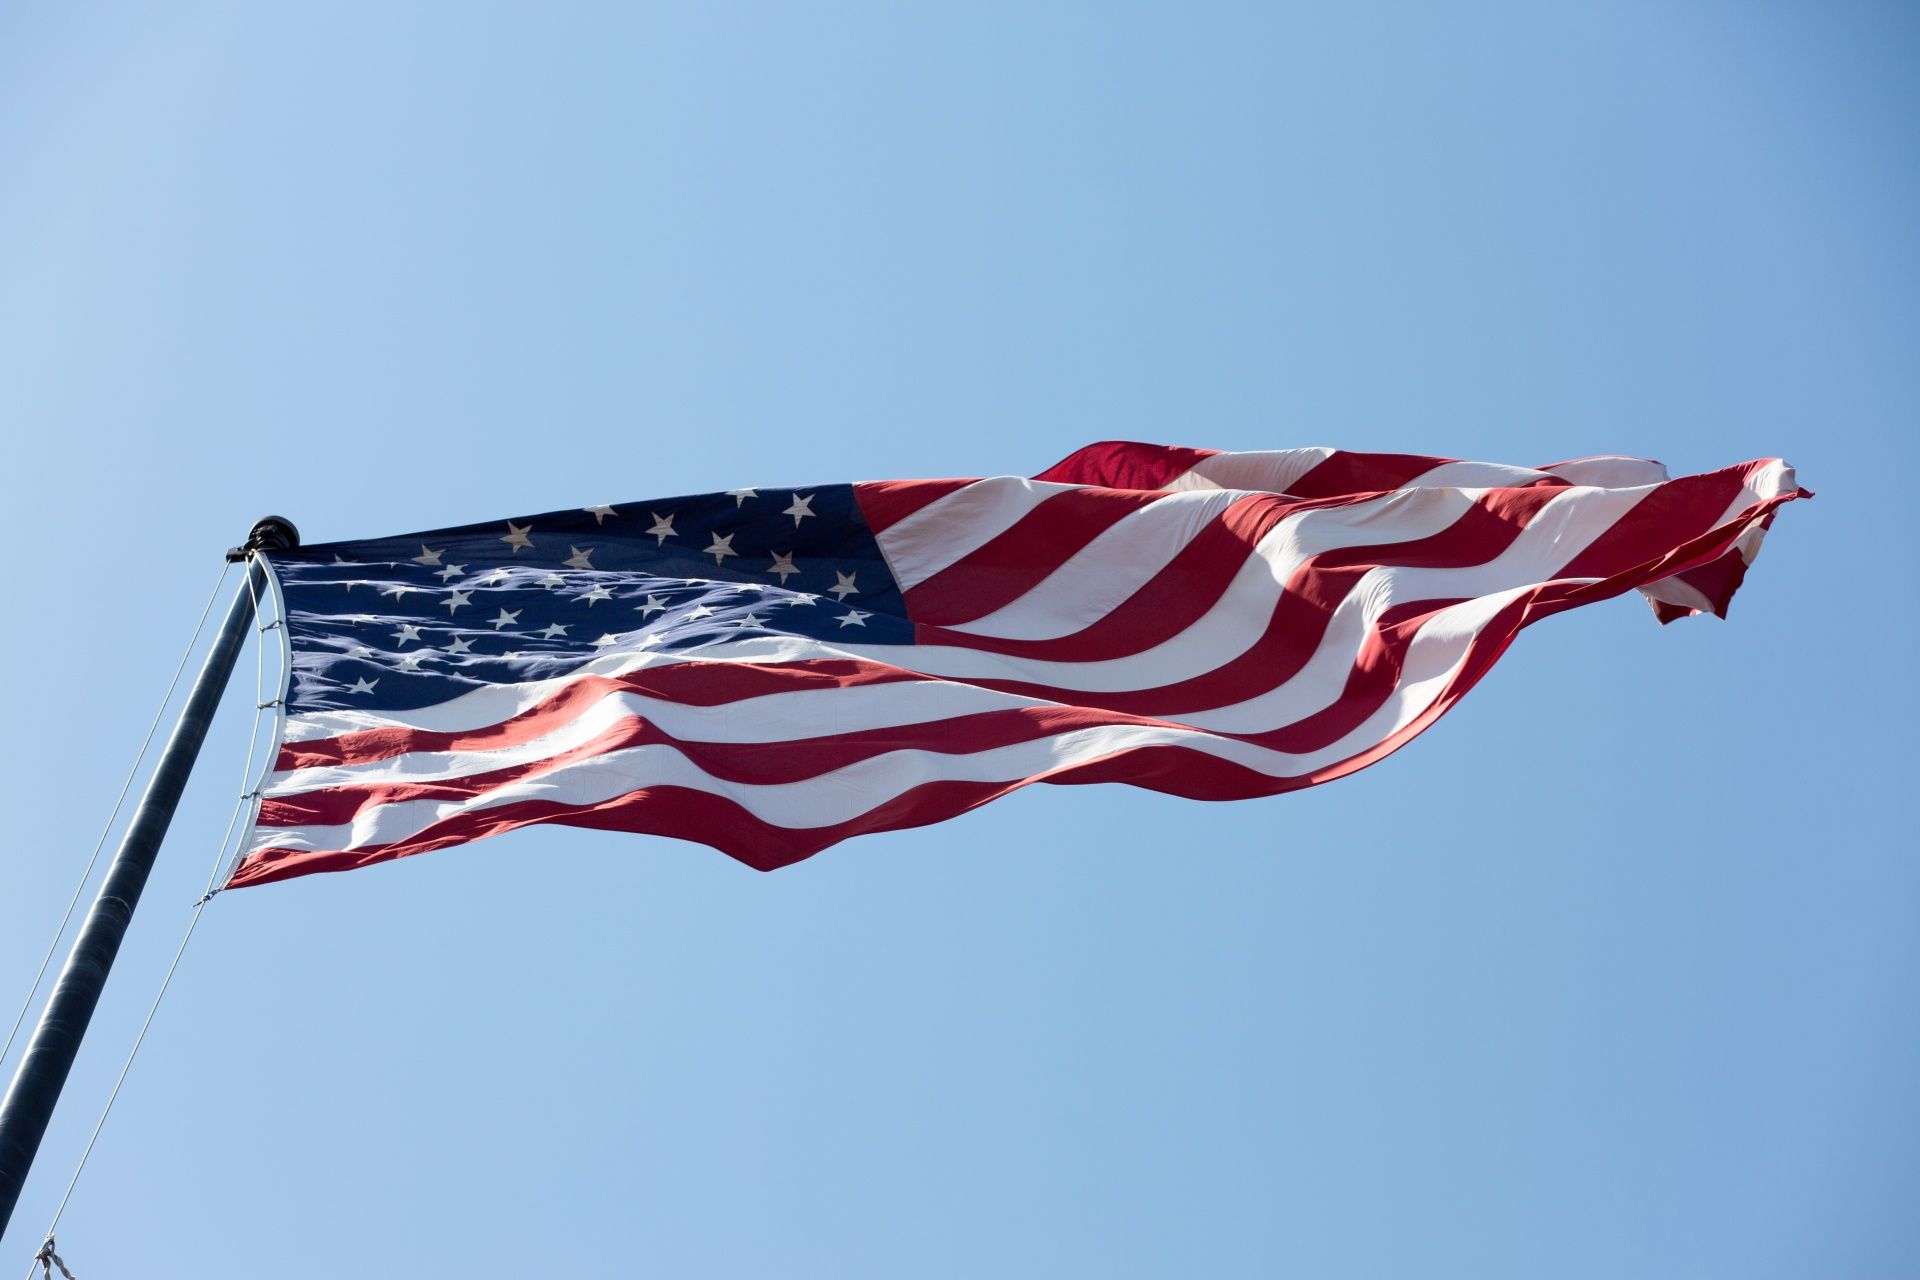 united-states-of-america-flag-1462905064LFm